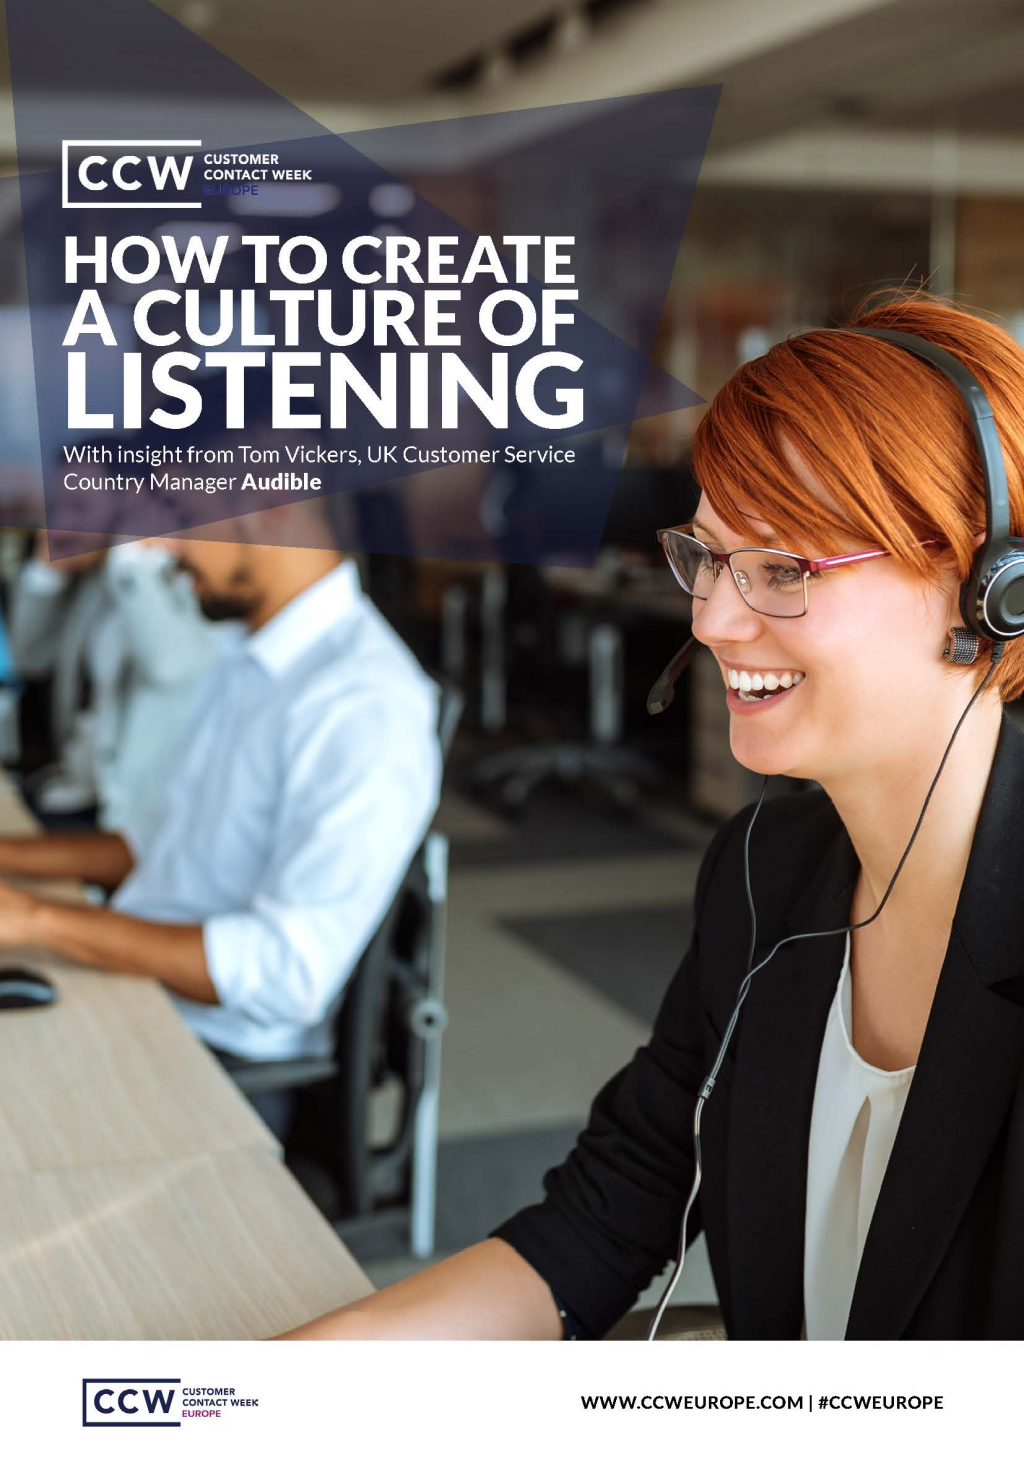 How to Create a Culture of Listening - An Interview with Audible